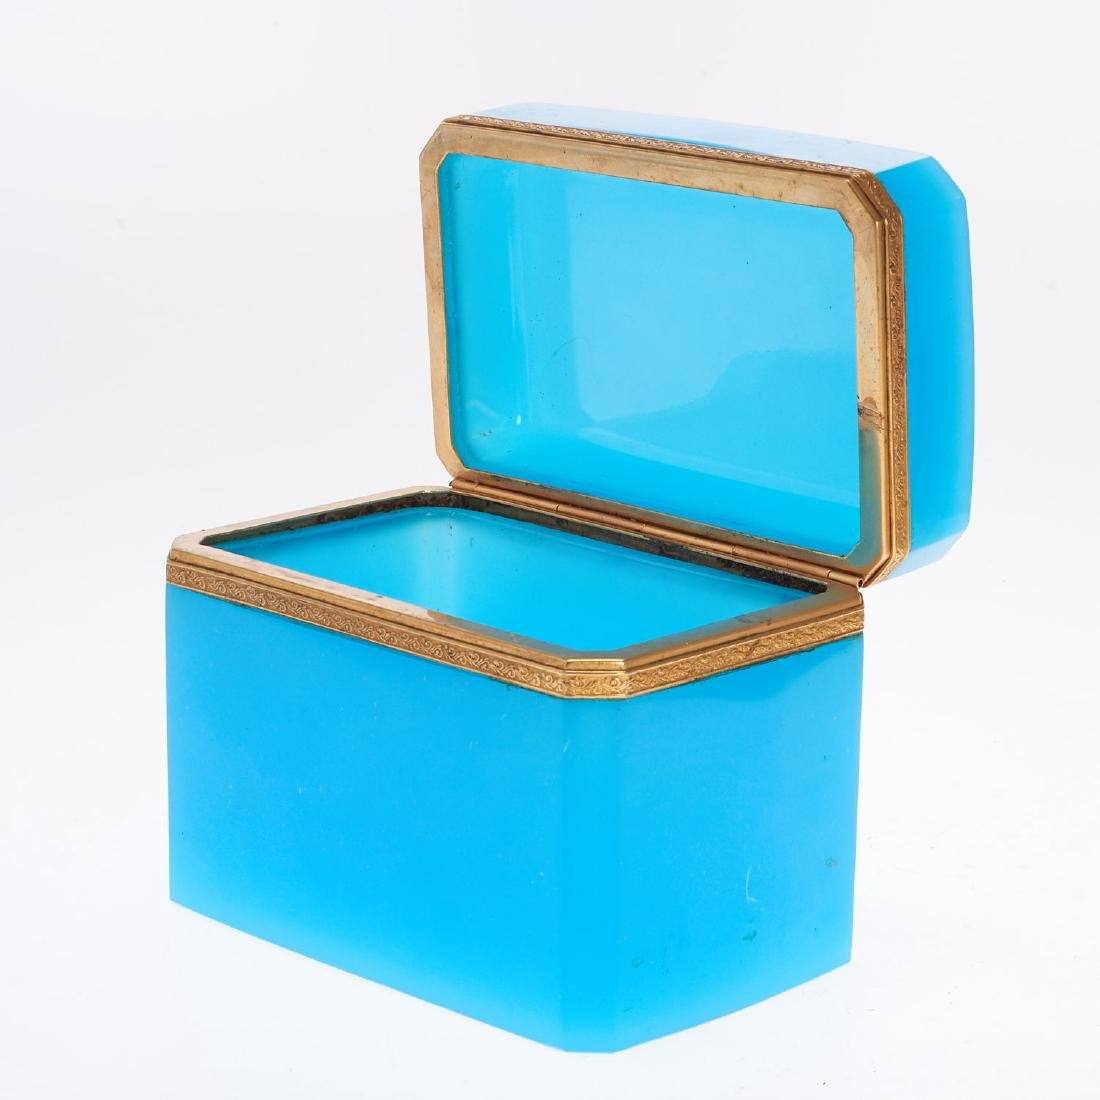 Antique French blue opaline glass box - 3